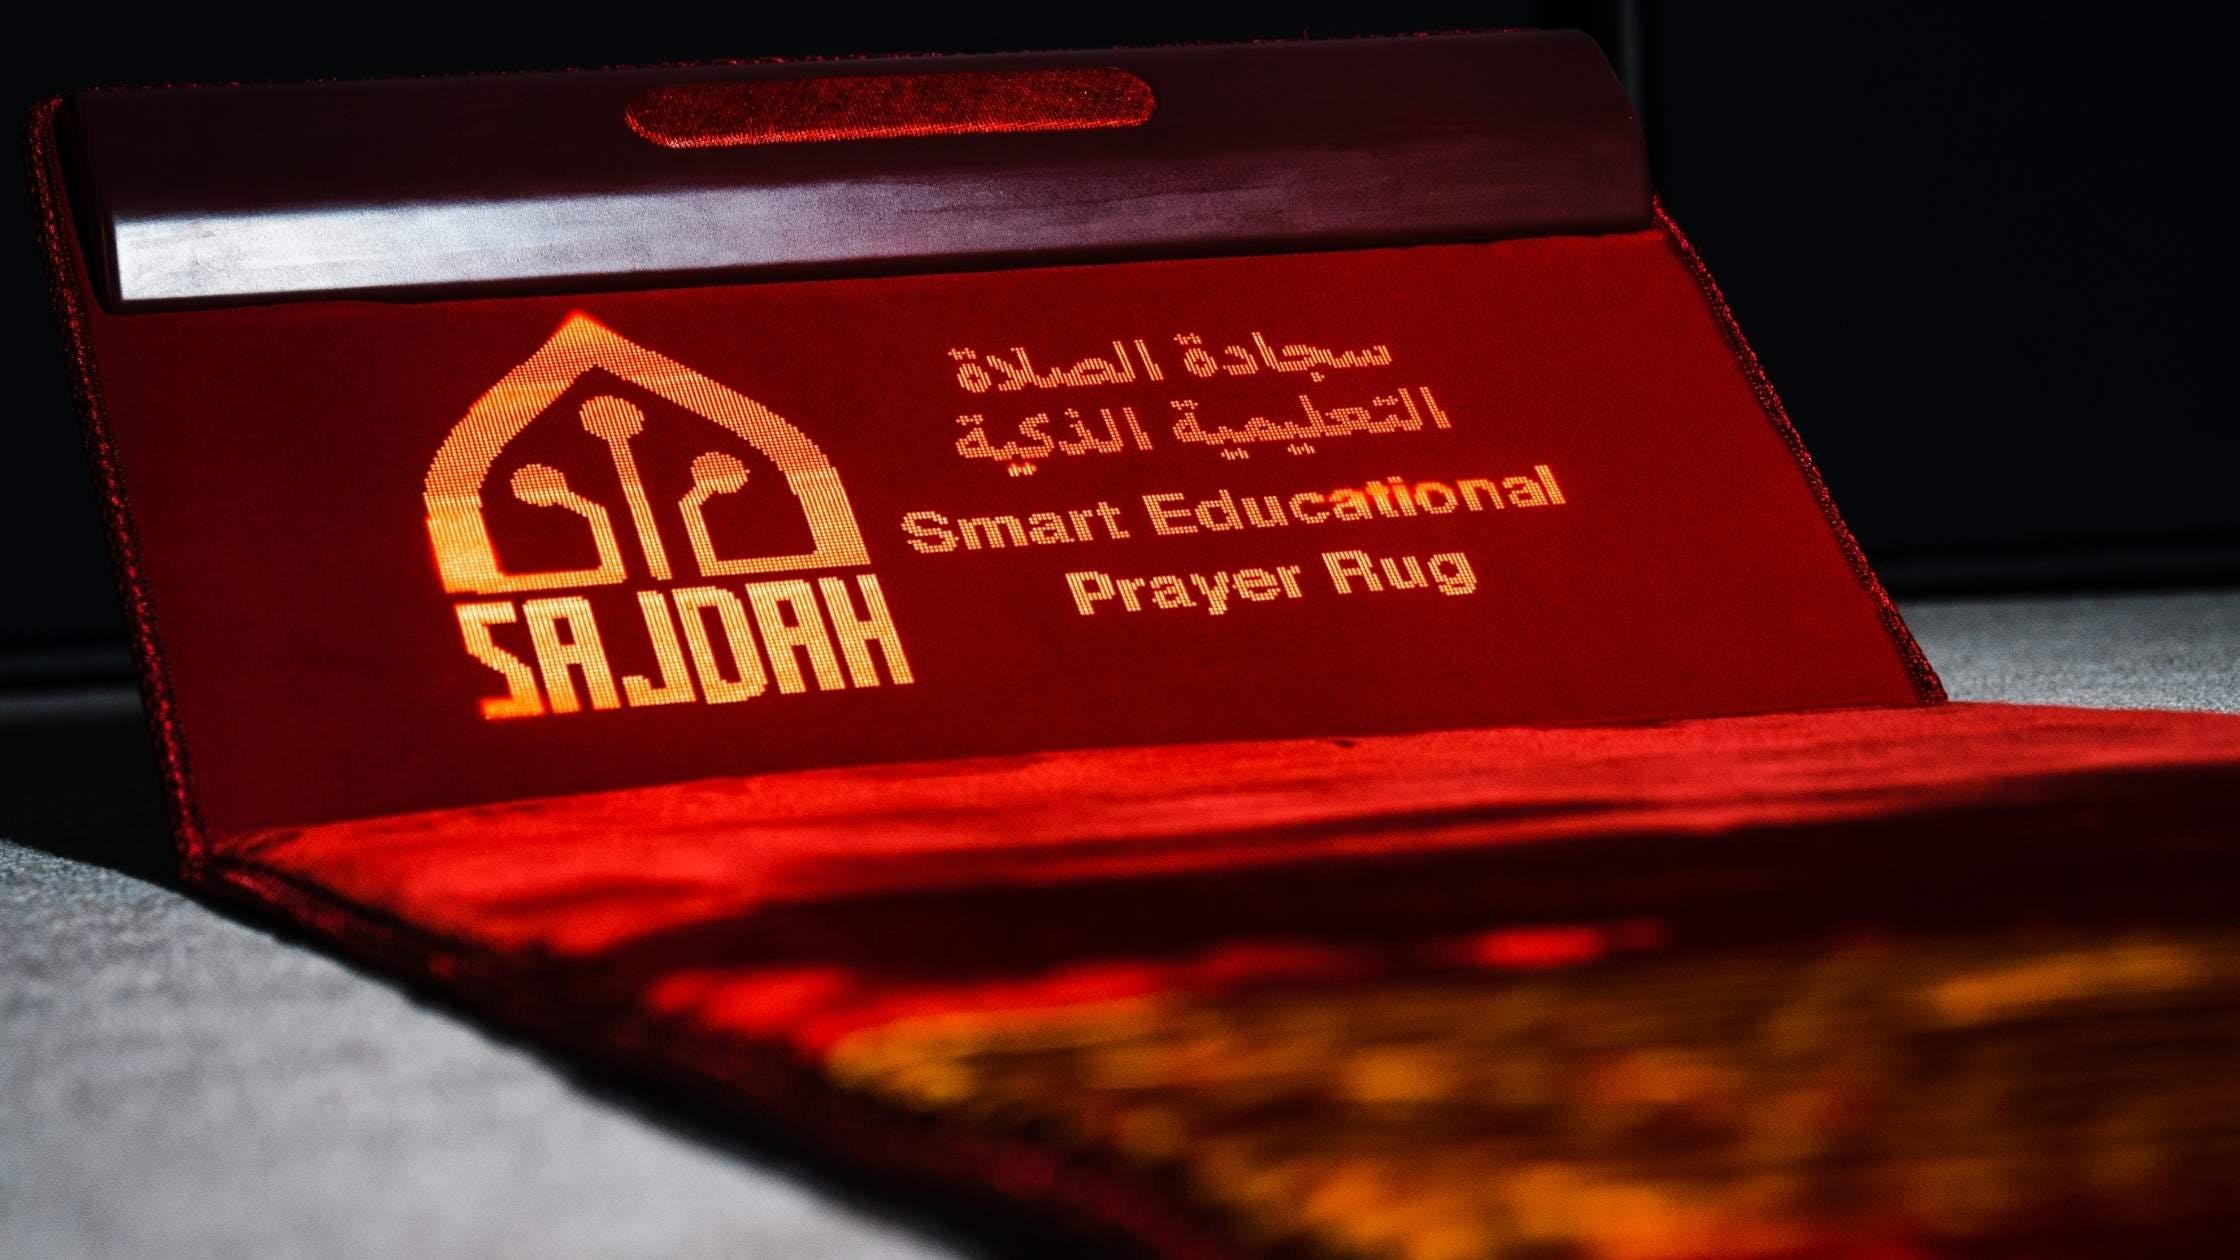 World's First Smart Educational Prayer Rug and You